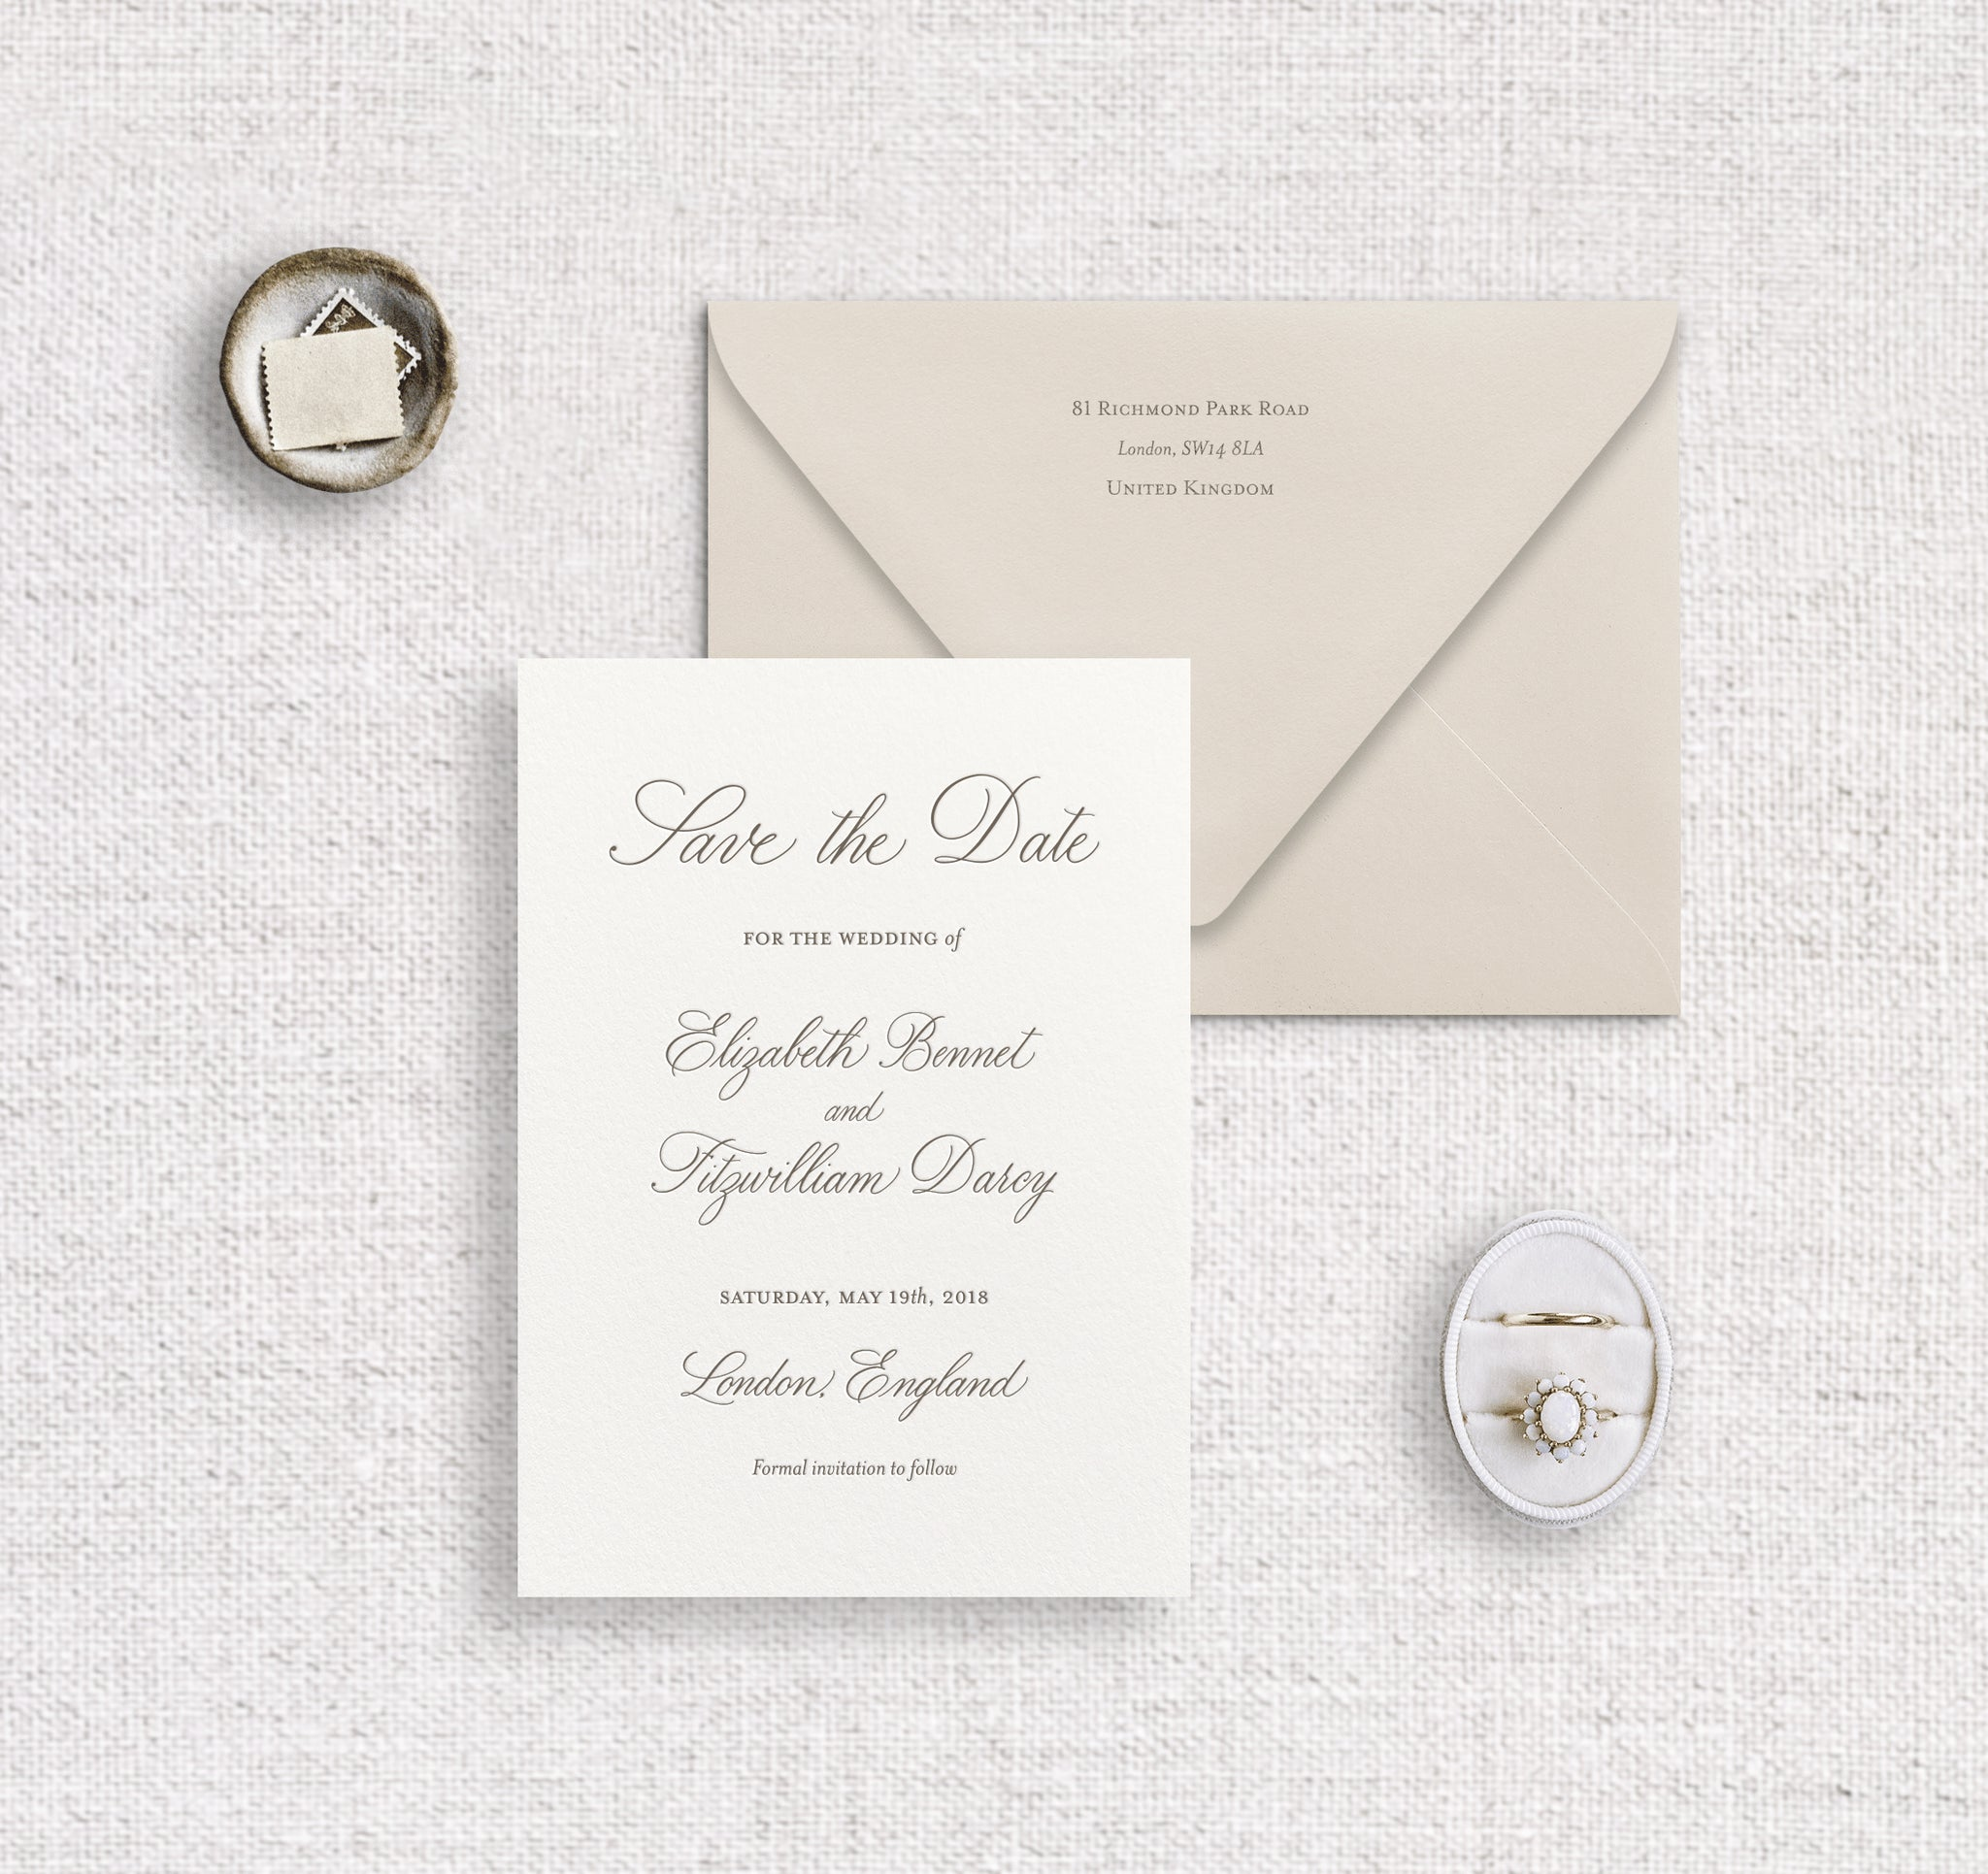 Elizabeth save the date letterpressed on ivory stock with pewter ink and nude envelope digitally printed with pewter ink